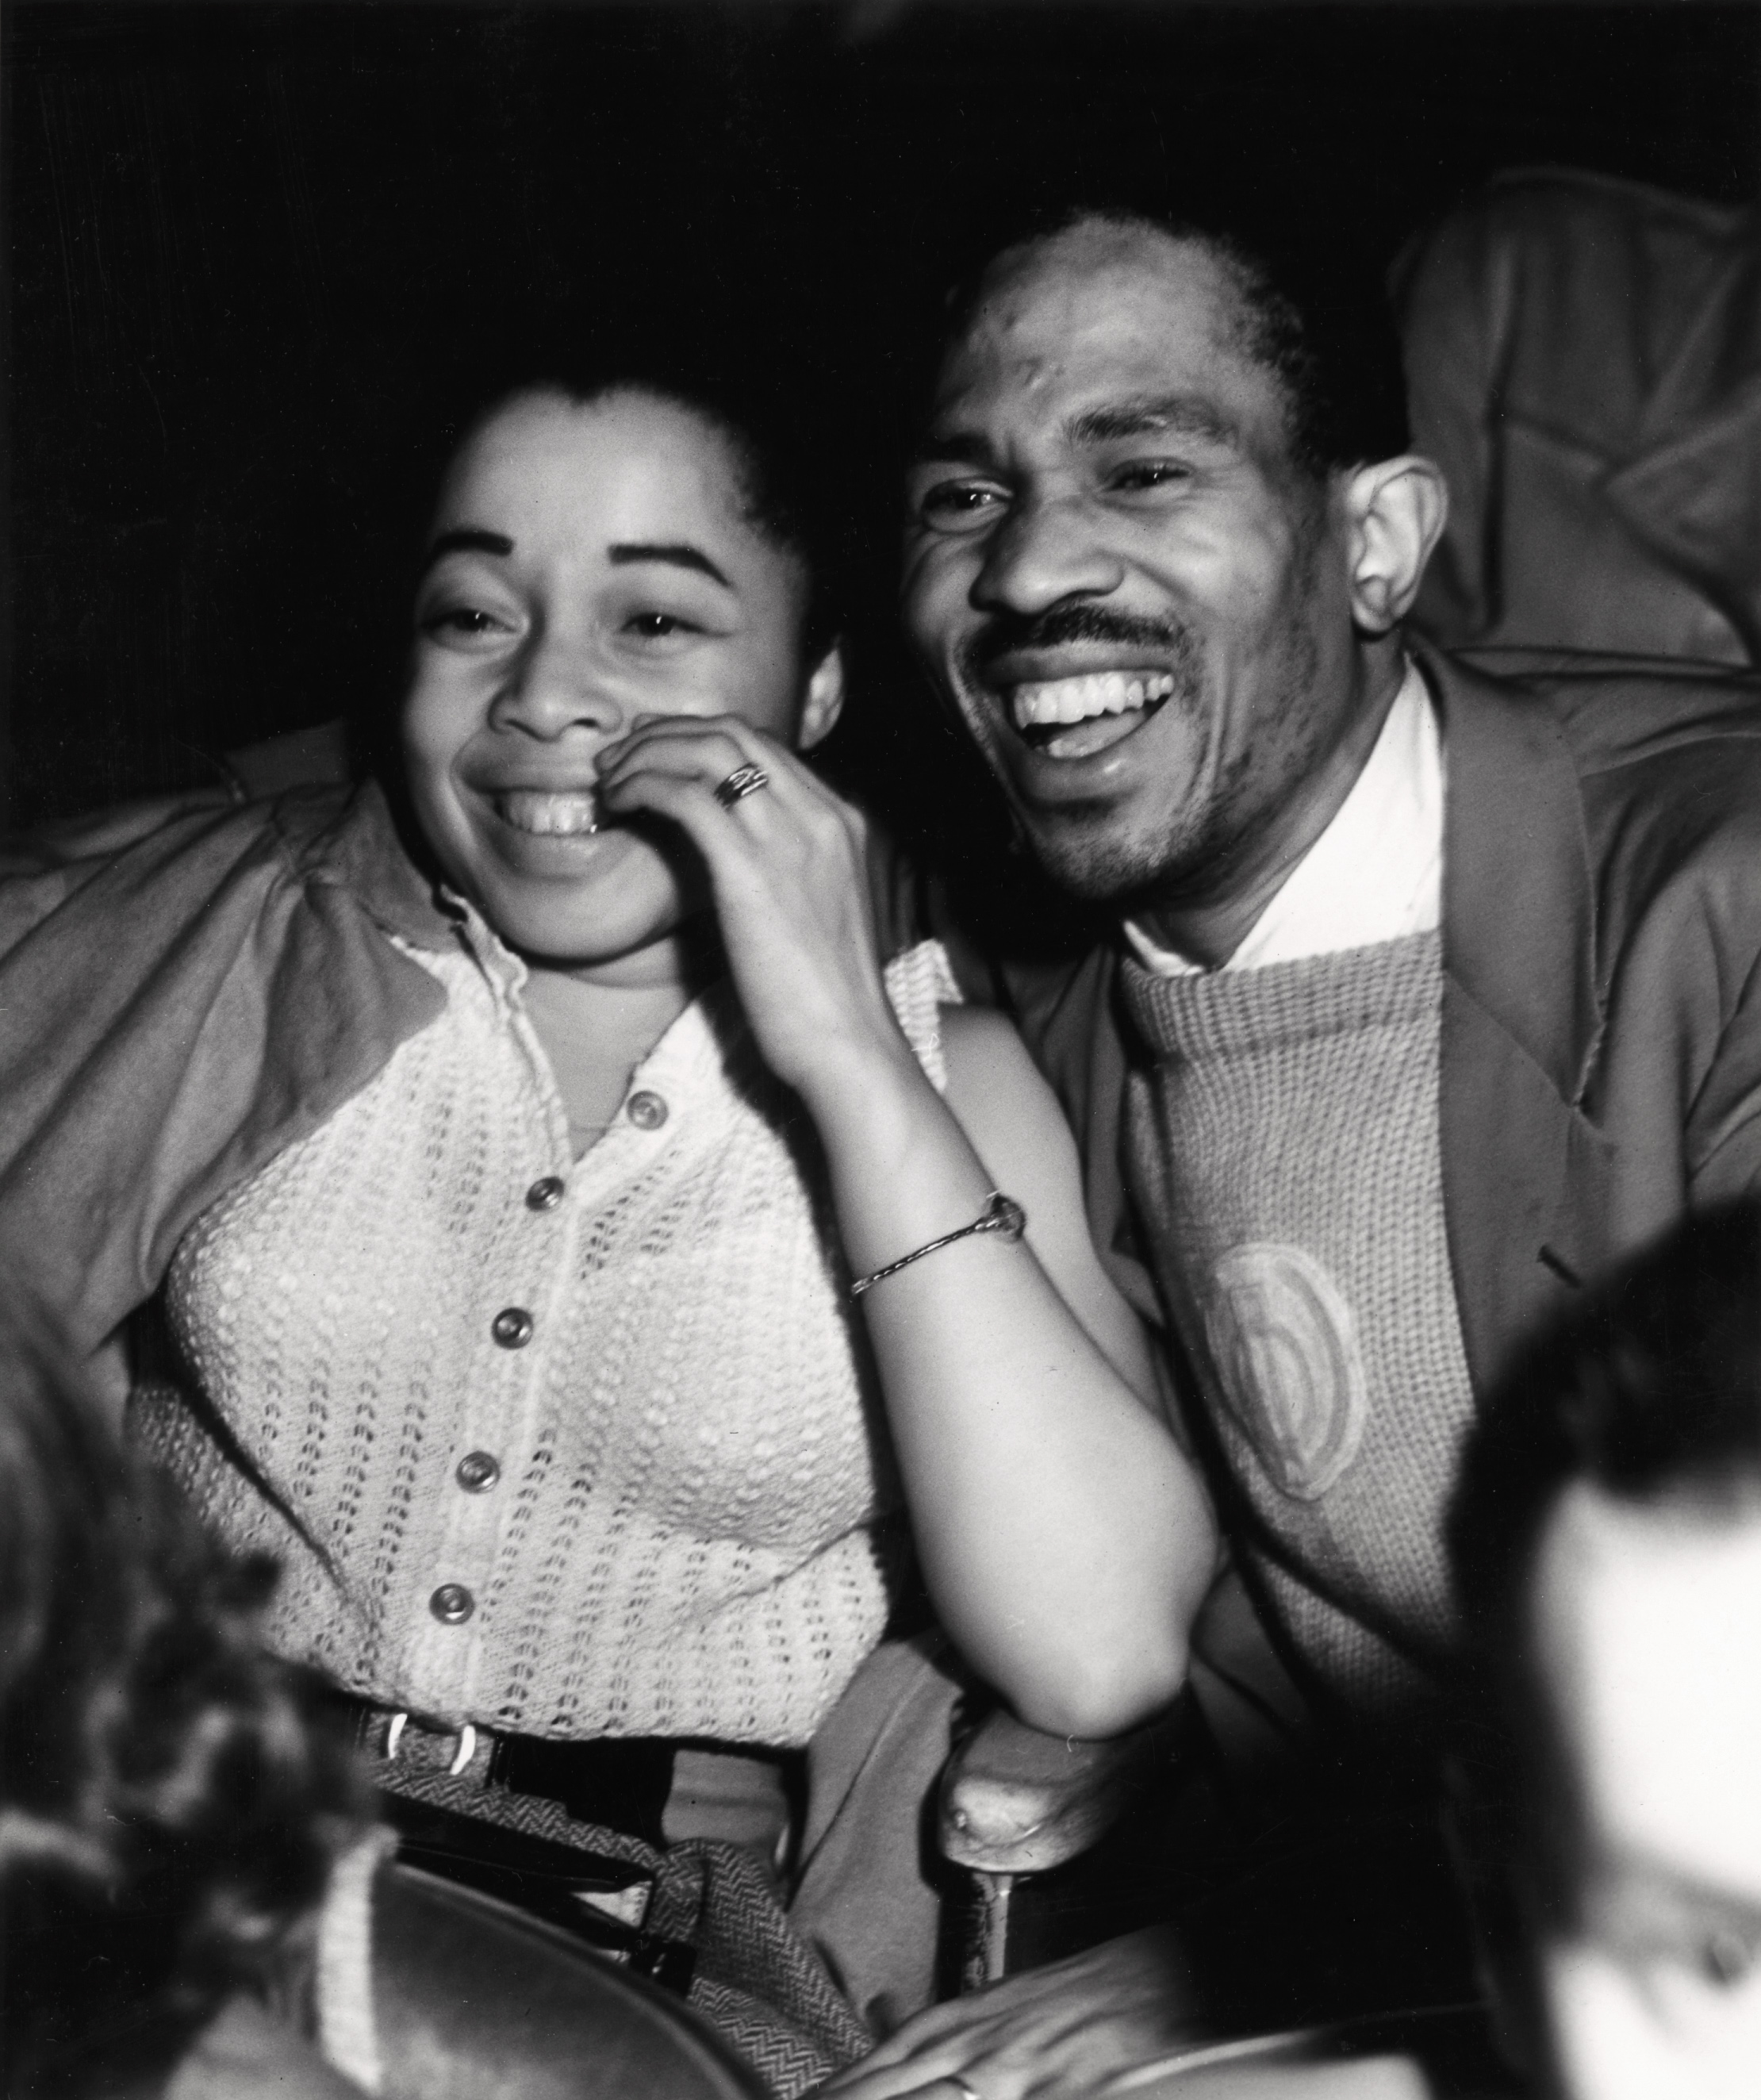 GIGGLES: Woman and man laughing  © Weegee/ International Center of Photography.